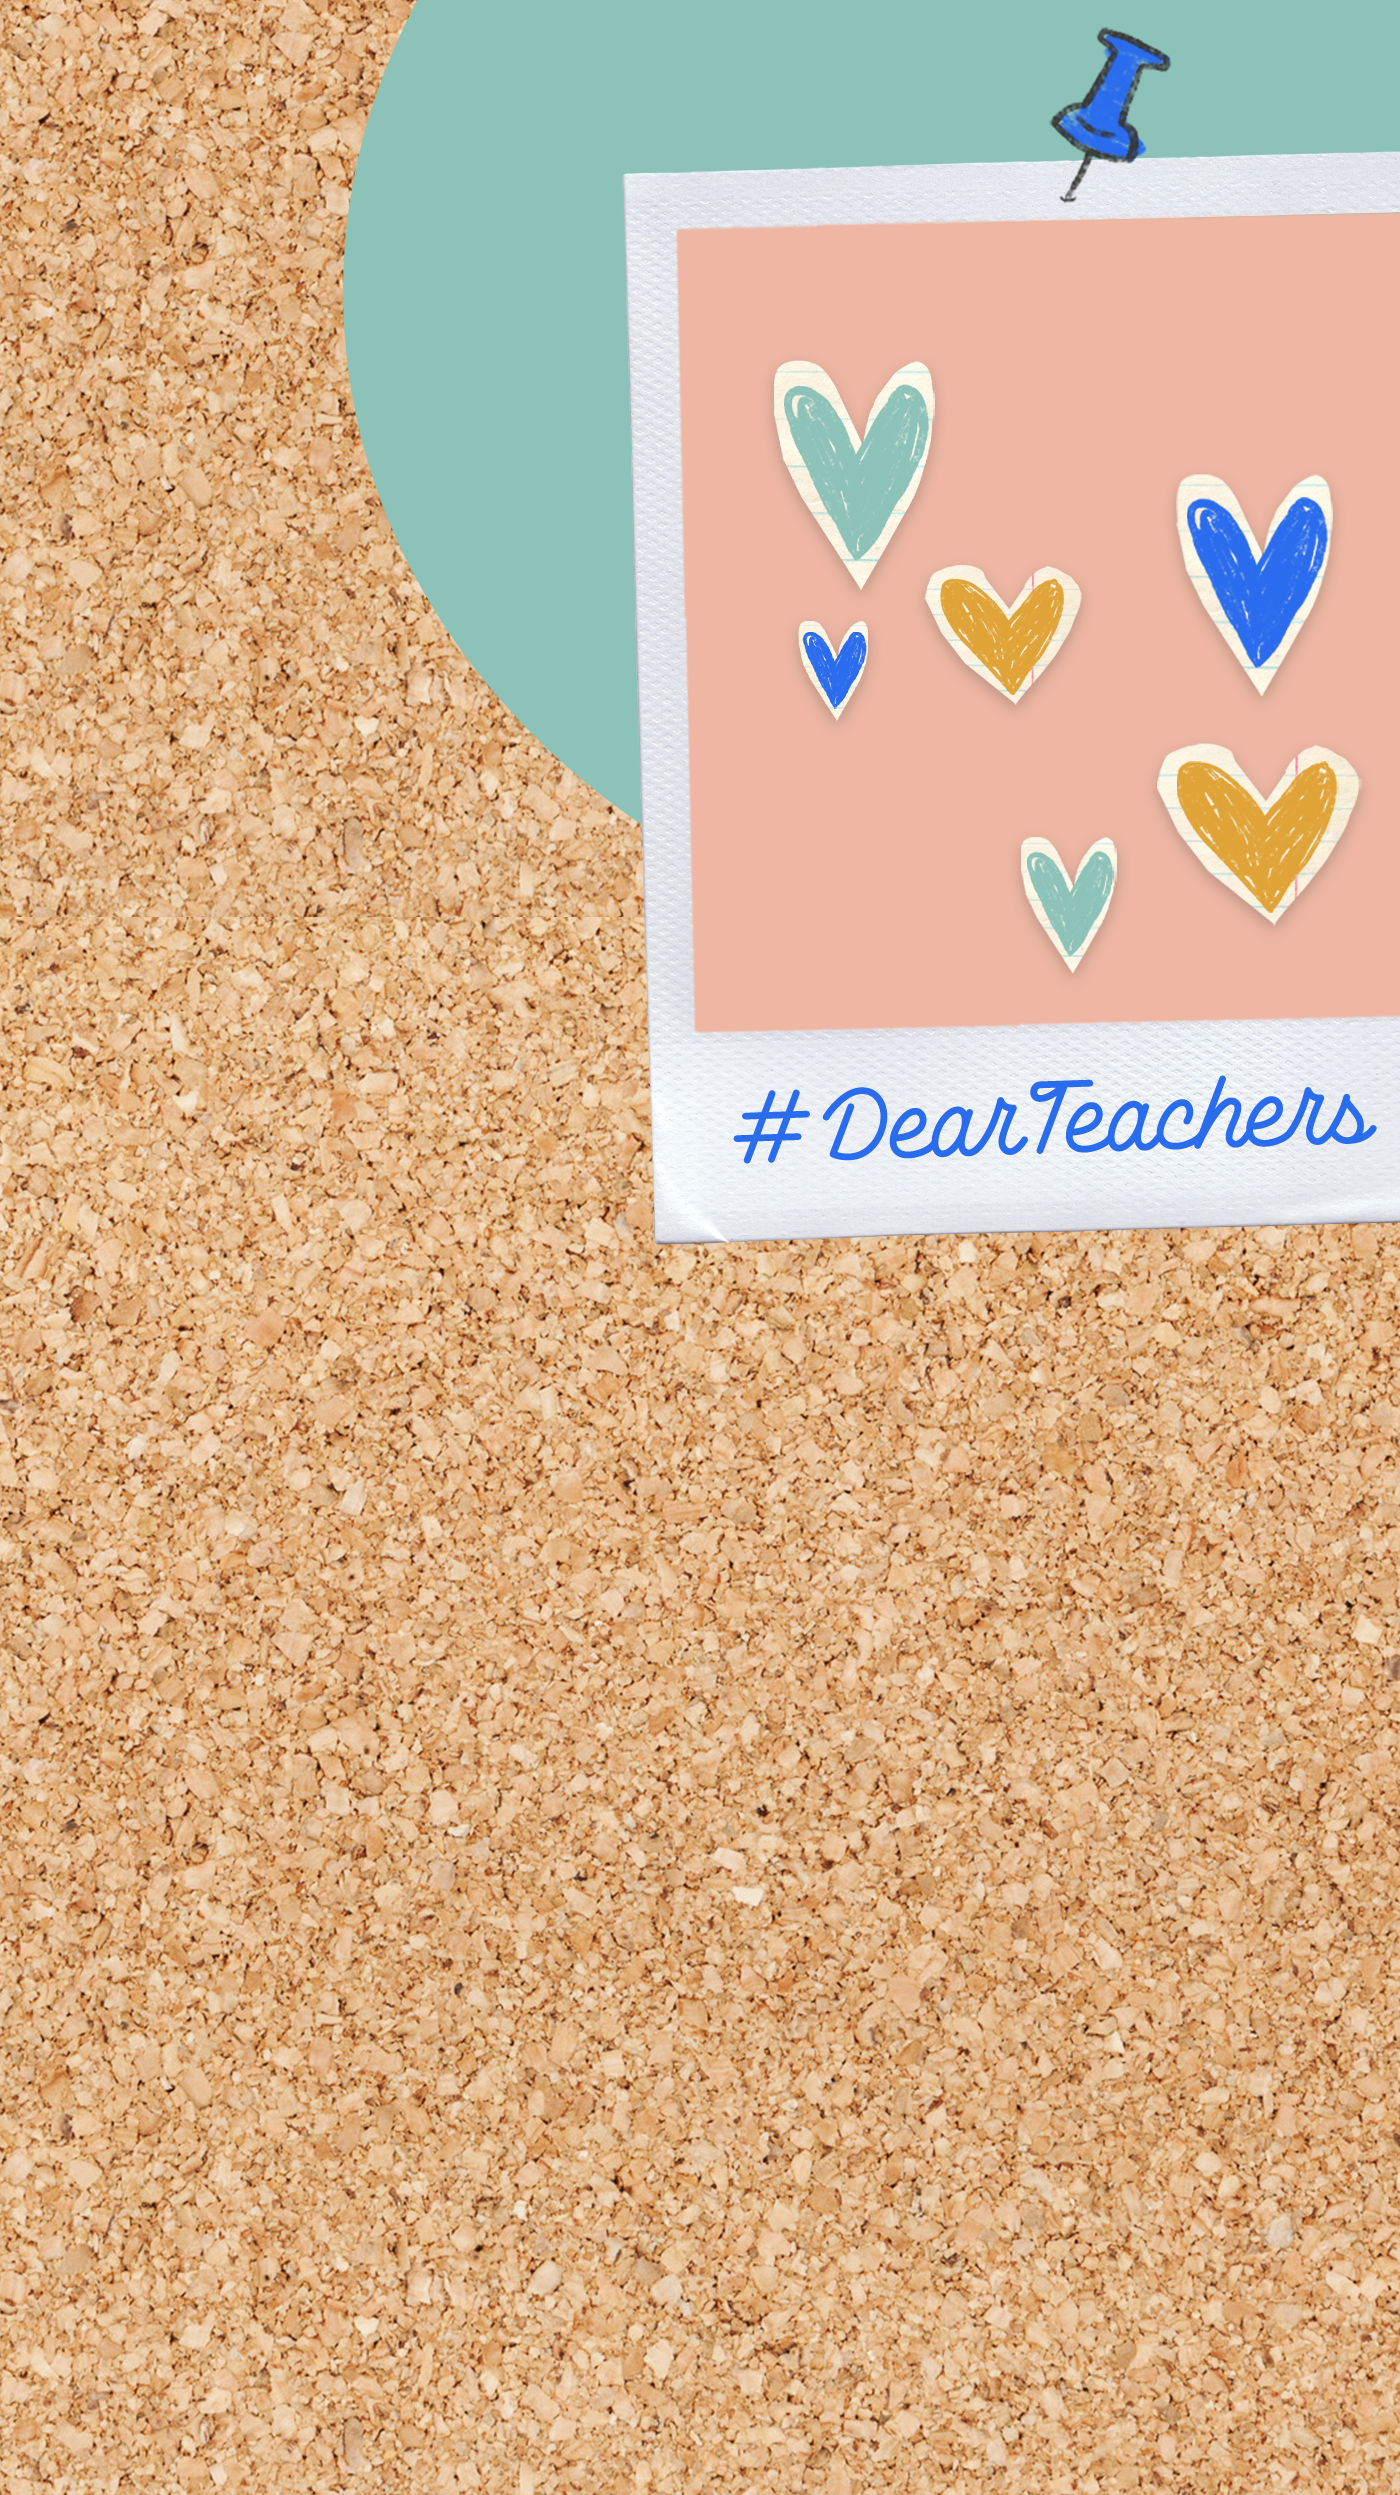 You deserve a little extra care this Teacher Appreciation Week! Check out a digital care package full of treats from fellow teachers: